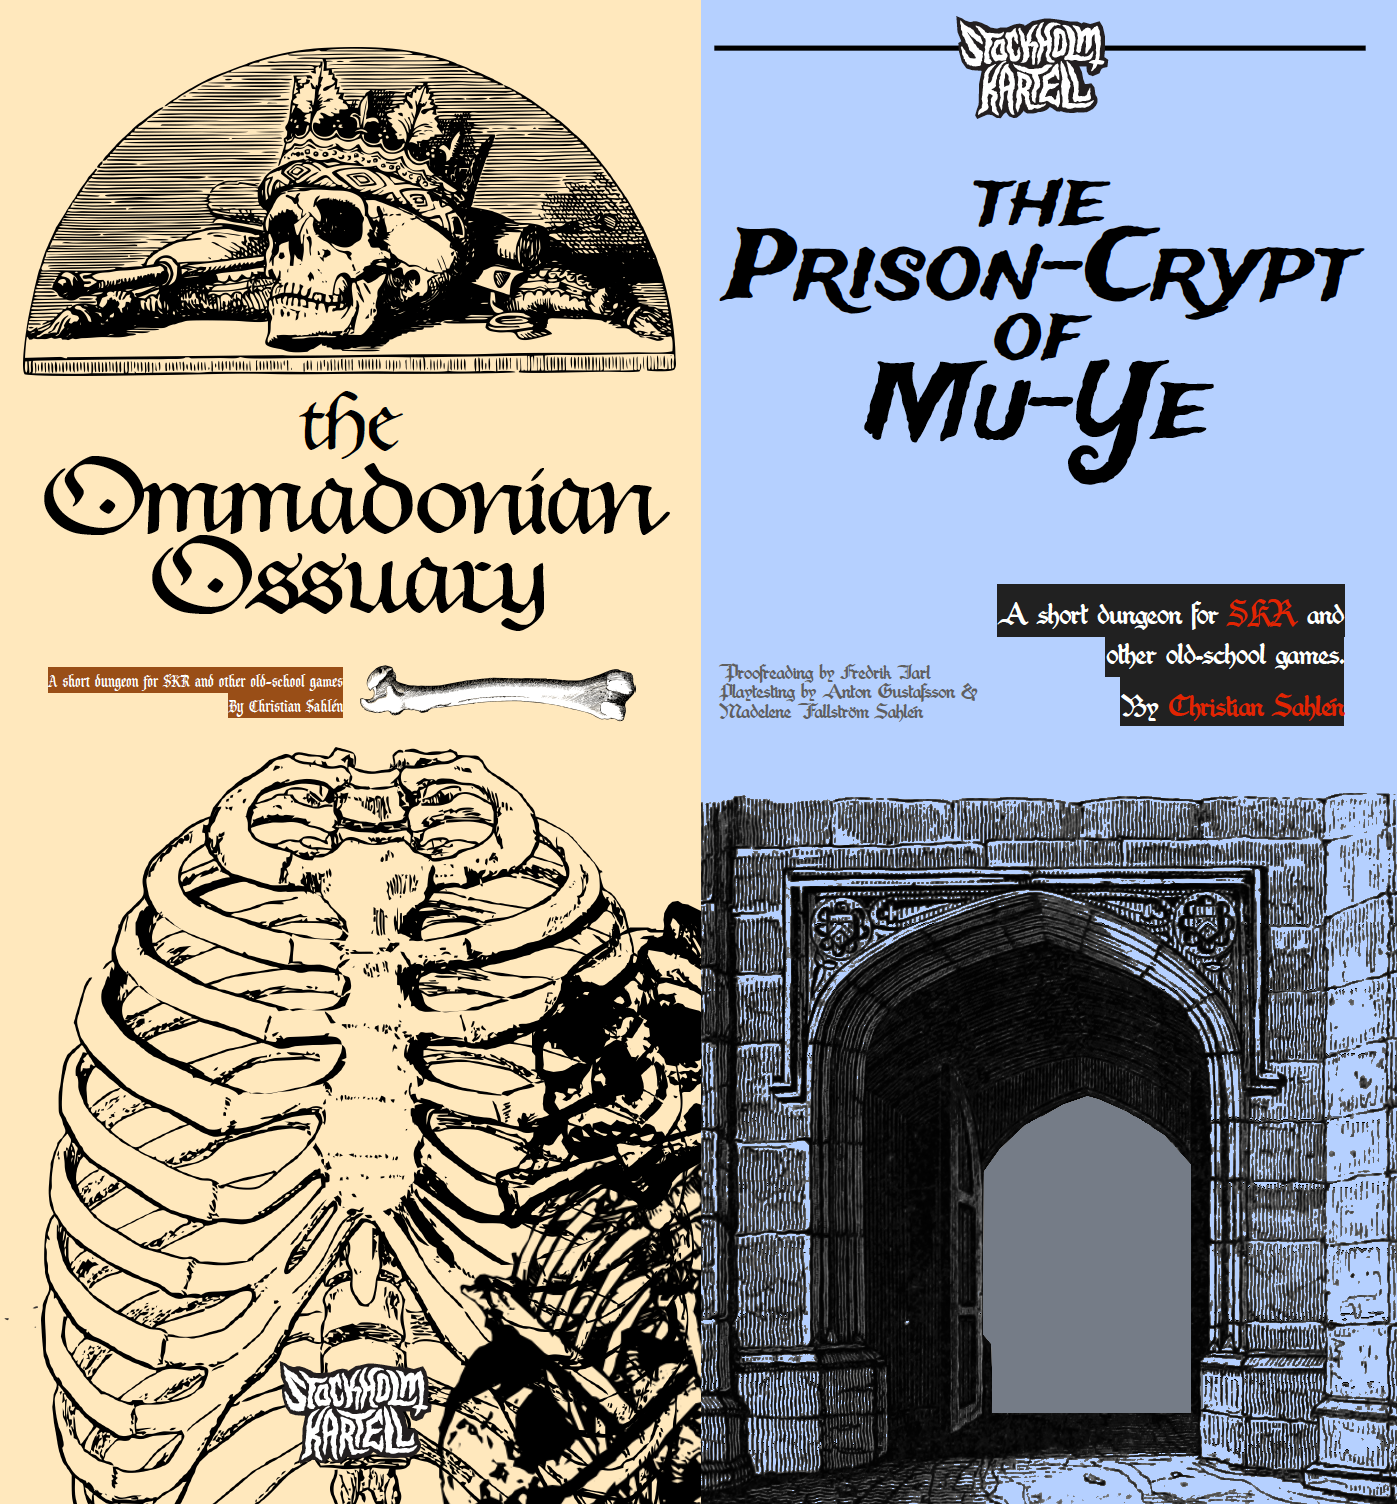 The Ommadonian Ossuary & The Prison-Crypt of Mu-Ye